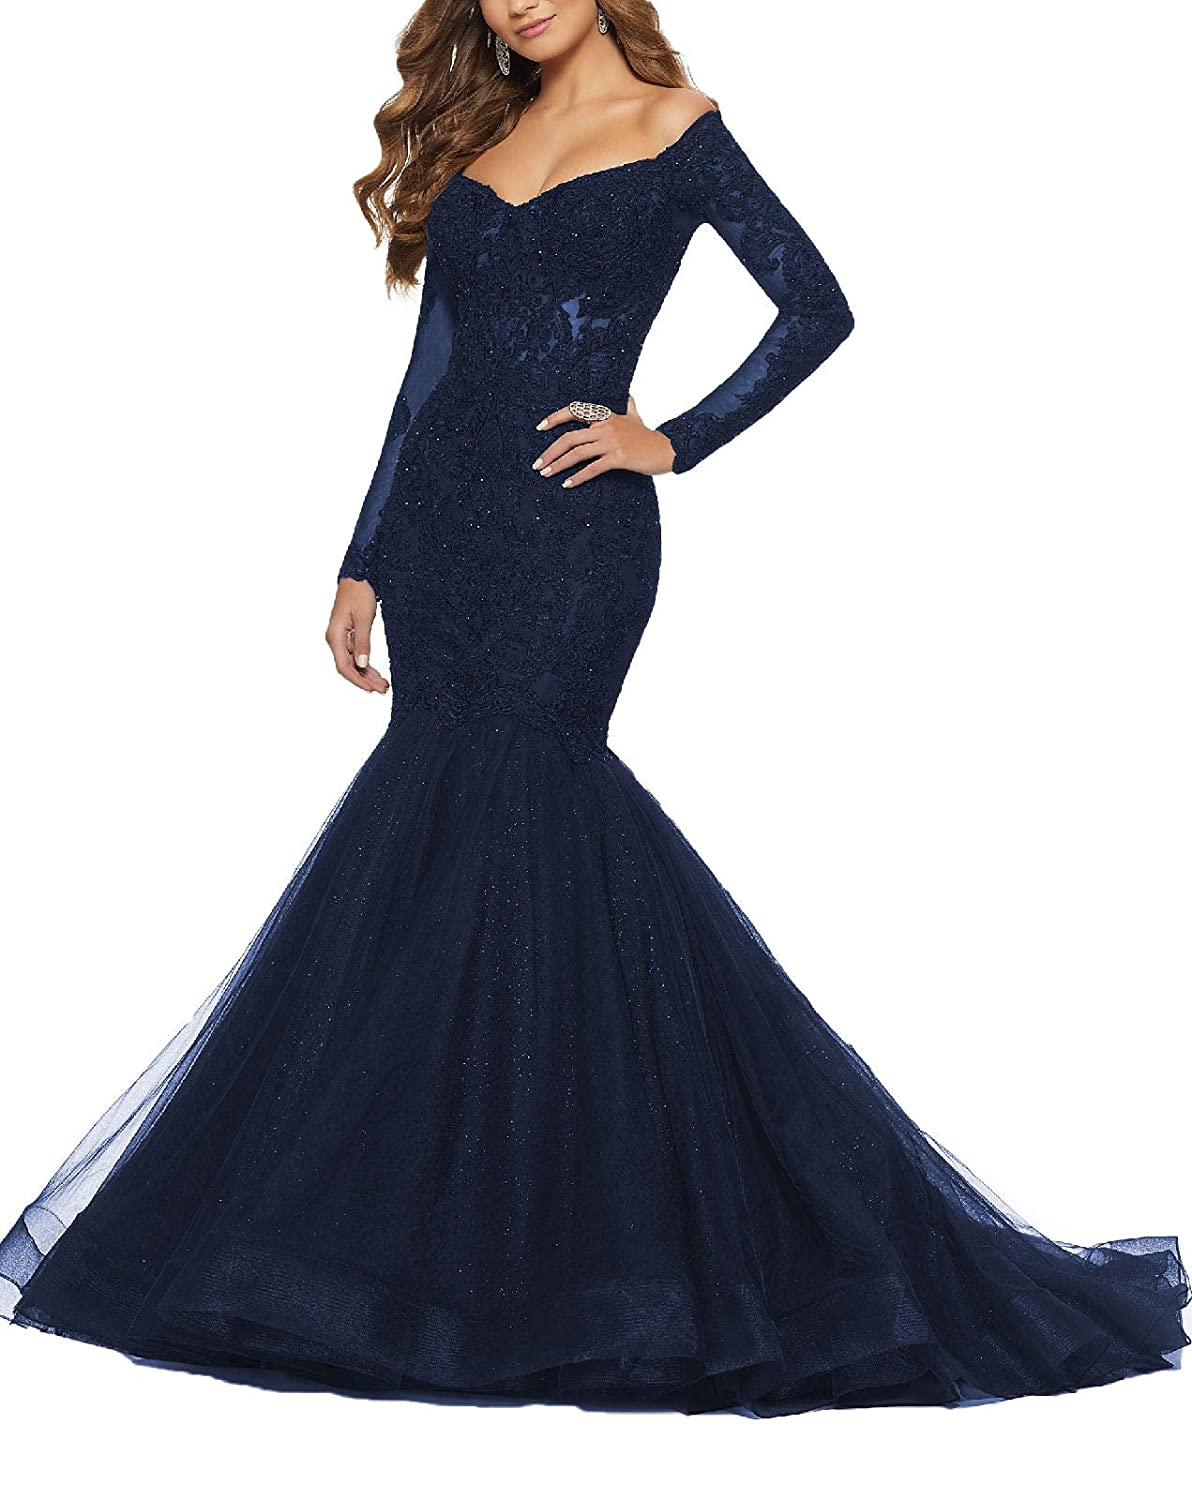 Nave bluee Yisha Bello Women's Off The Shoulder Long Sleeve Mermaid Pro Dress Lace Applique Beaded Evening Dress Formal Ball Gowns